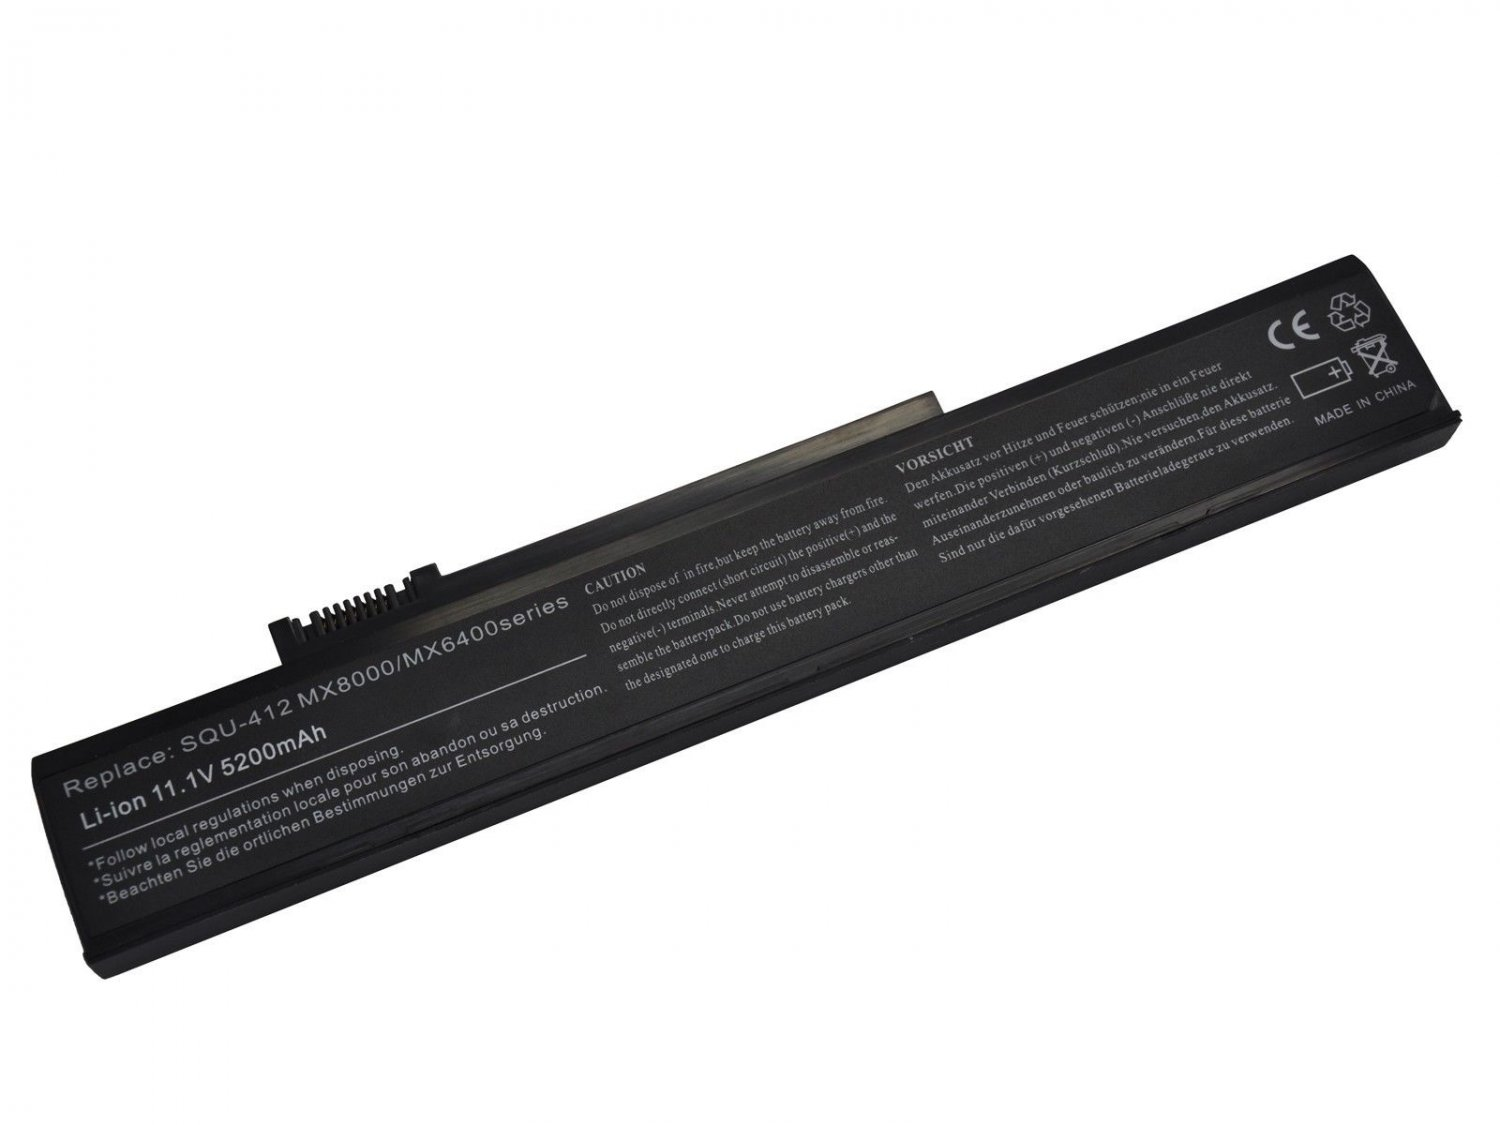 New Battery for Gateway 6000 6500  NX550 S-7500N  S-7700 Laptop Battery